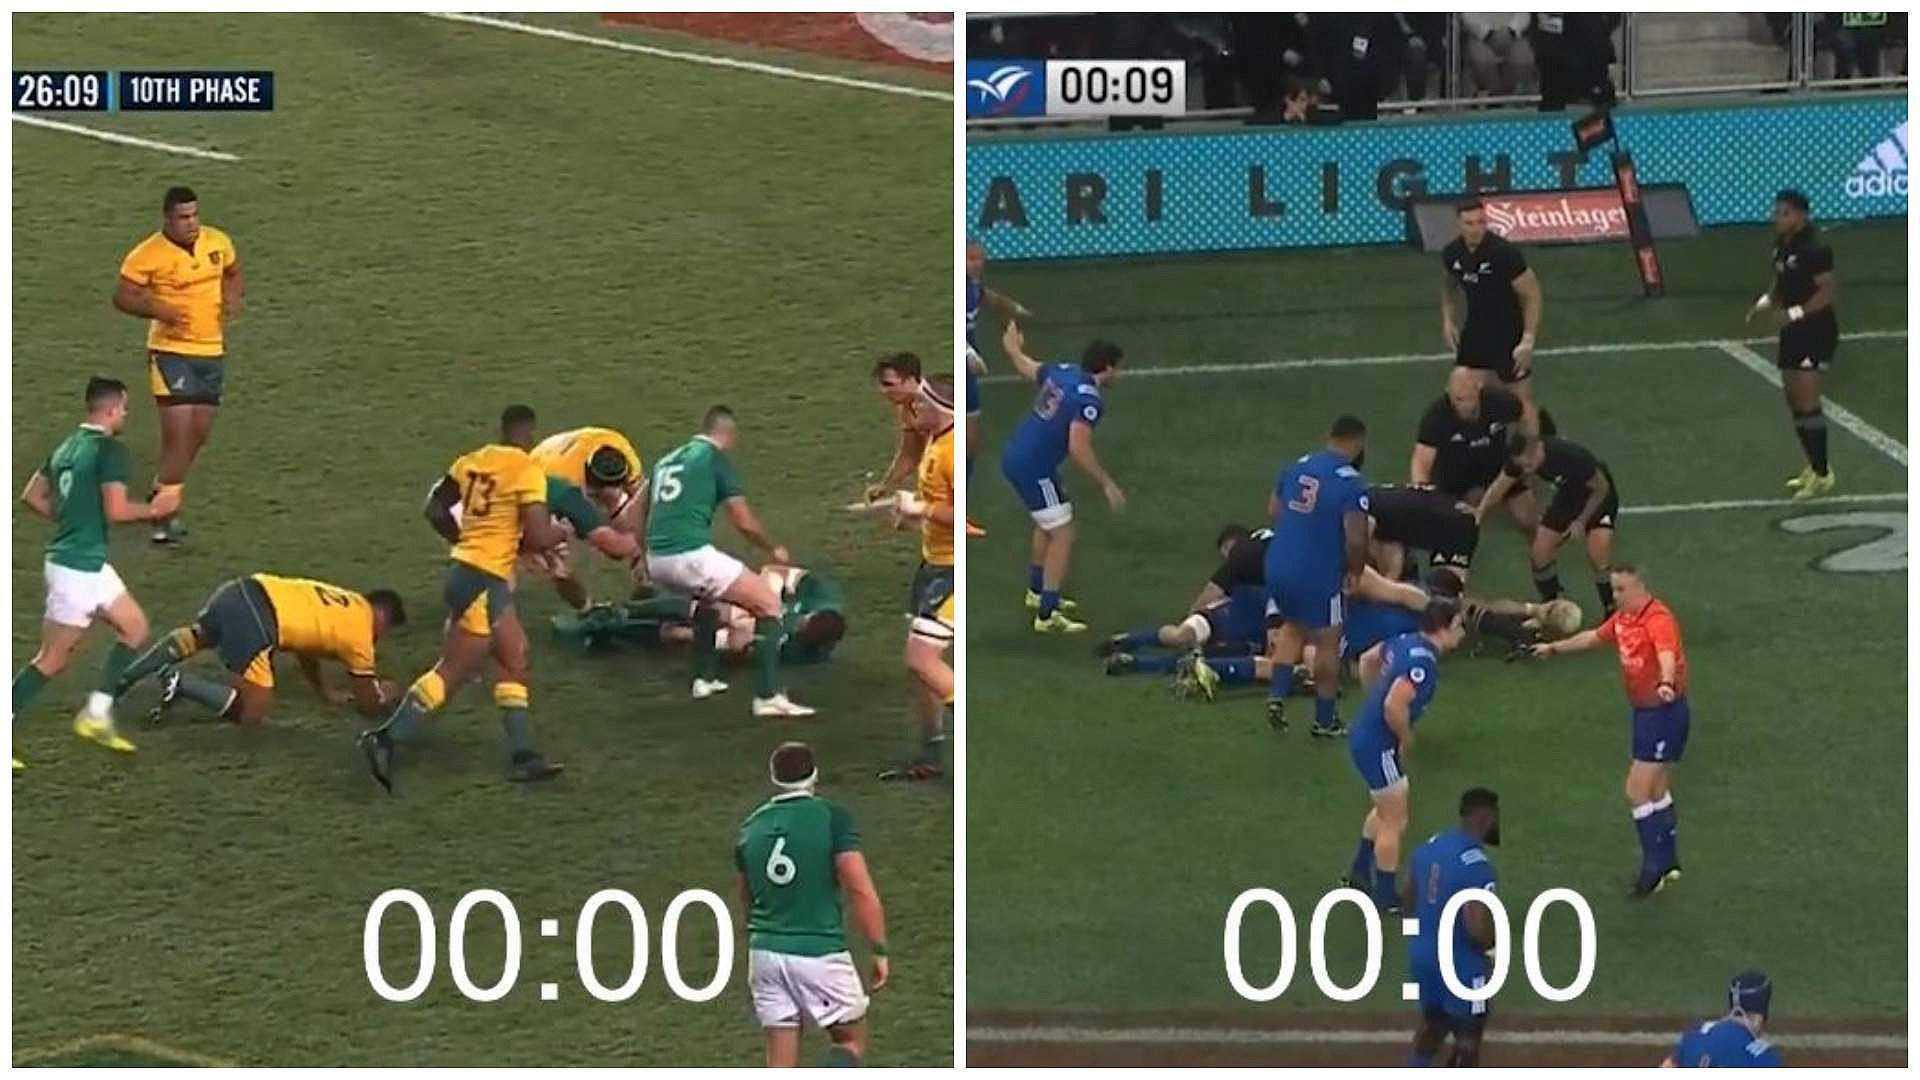 SETTLED: Who's the faster passer - Conor Murray or Aaron Smith?